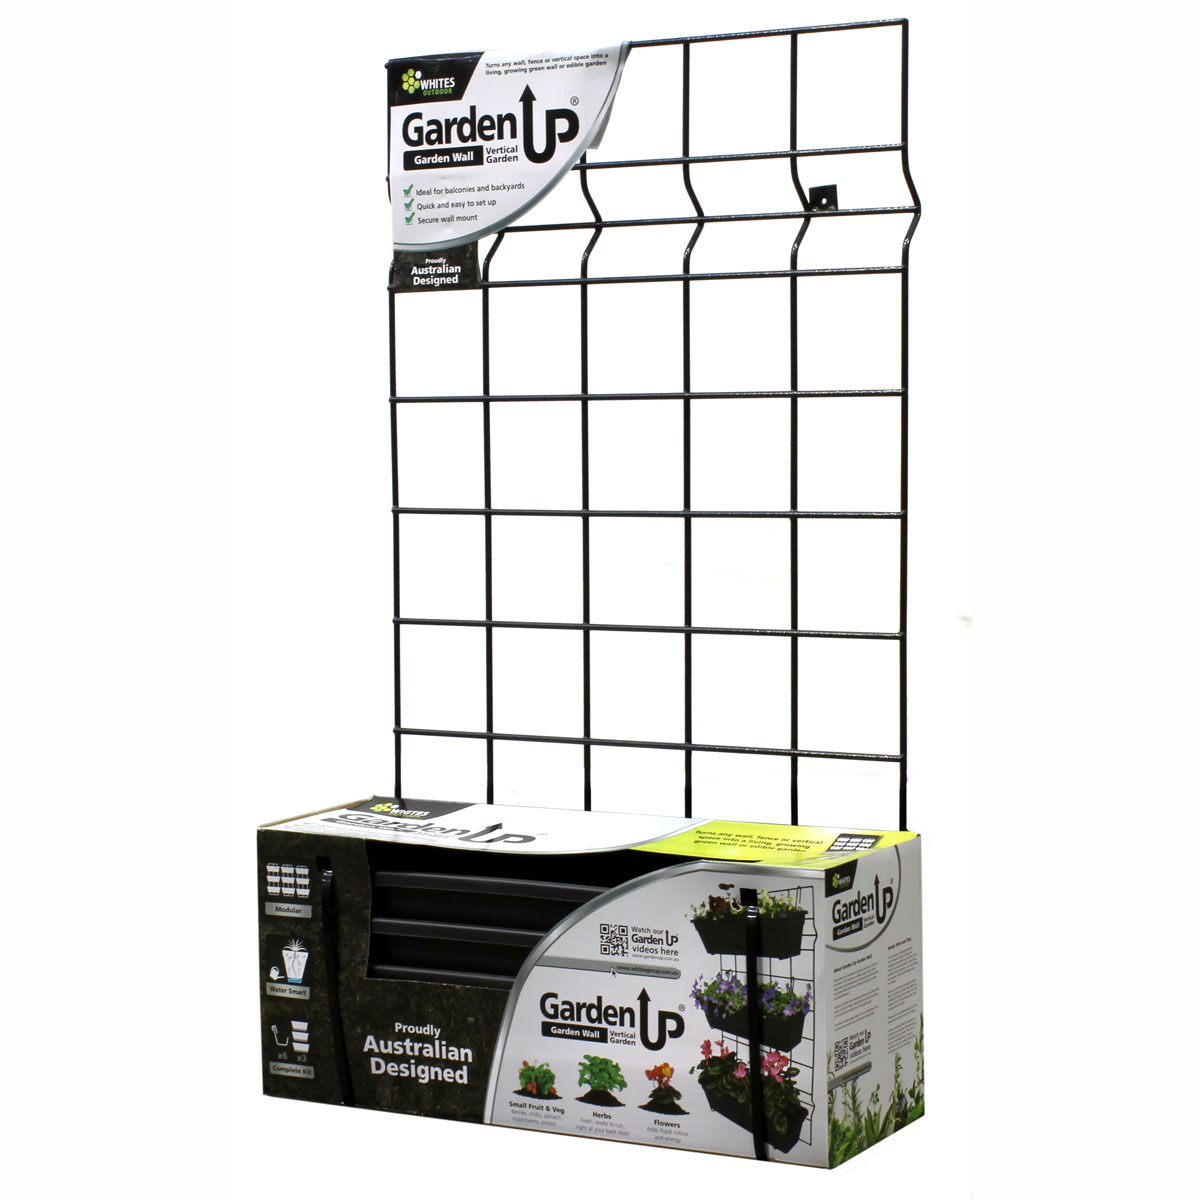 18194 Garden Up Classic Wall Kit in packaging